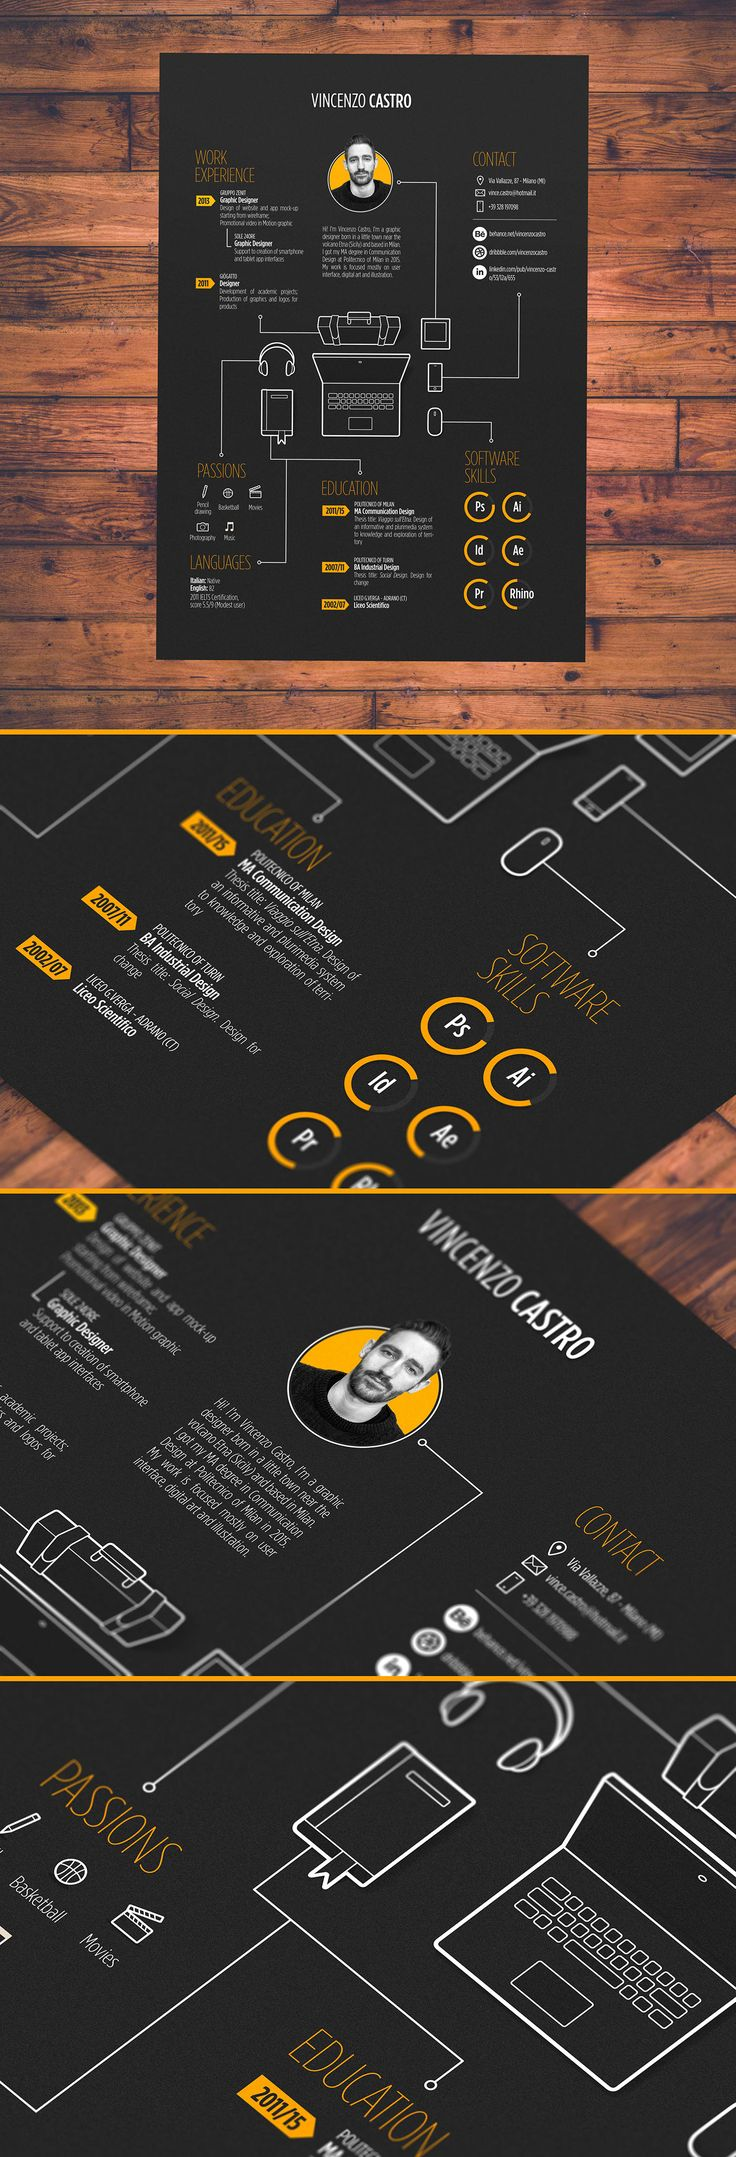 Vincenzo Castro , Graphic Designer , Self Promotion ; Like The Approach Of  A Art Designed CV And The Layout Feels Tidy And Collected.  Resume Graphic Designer